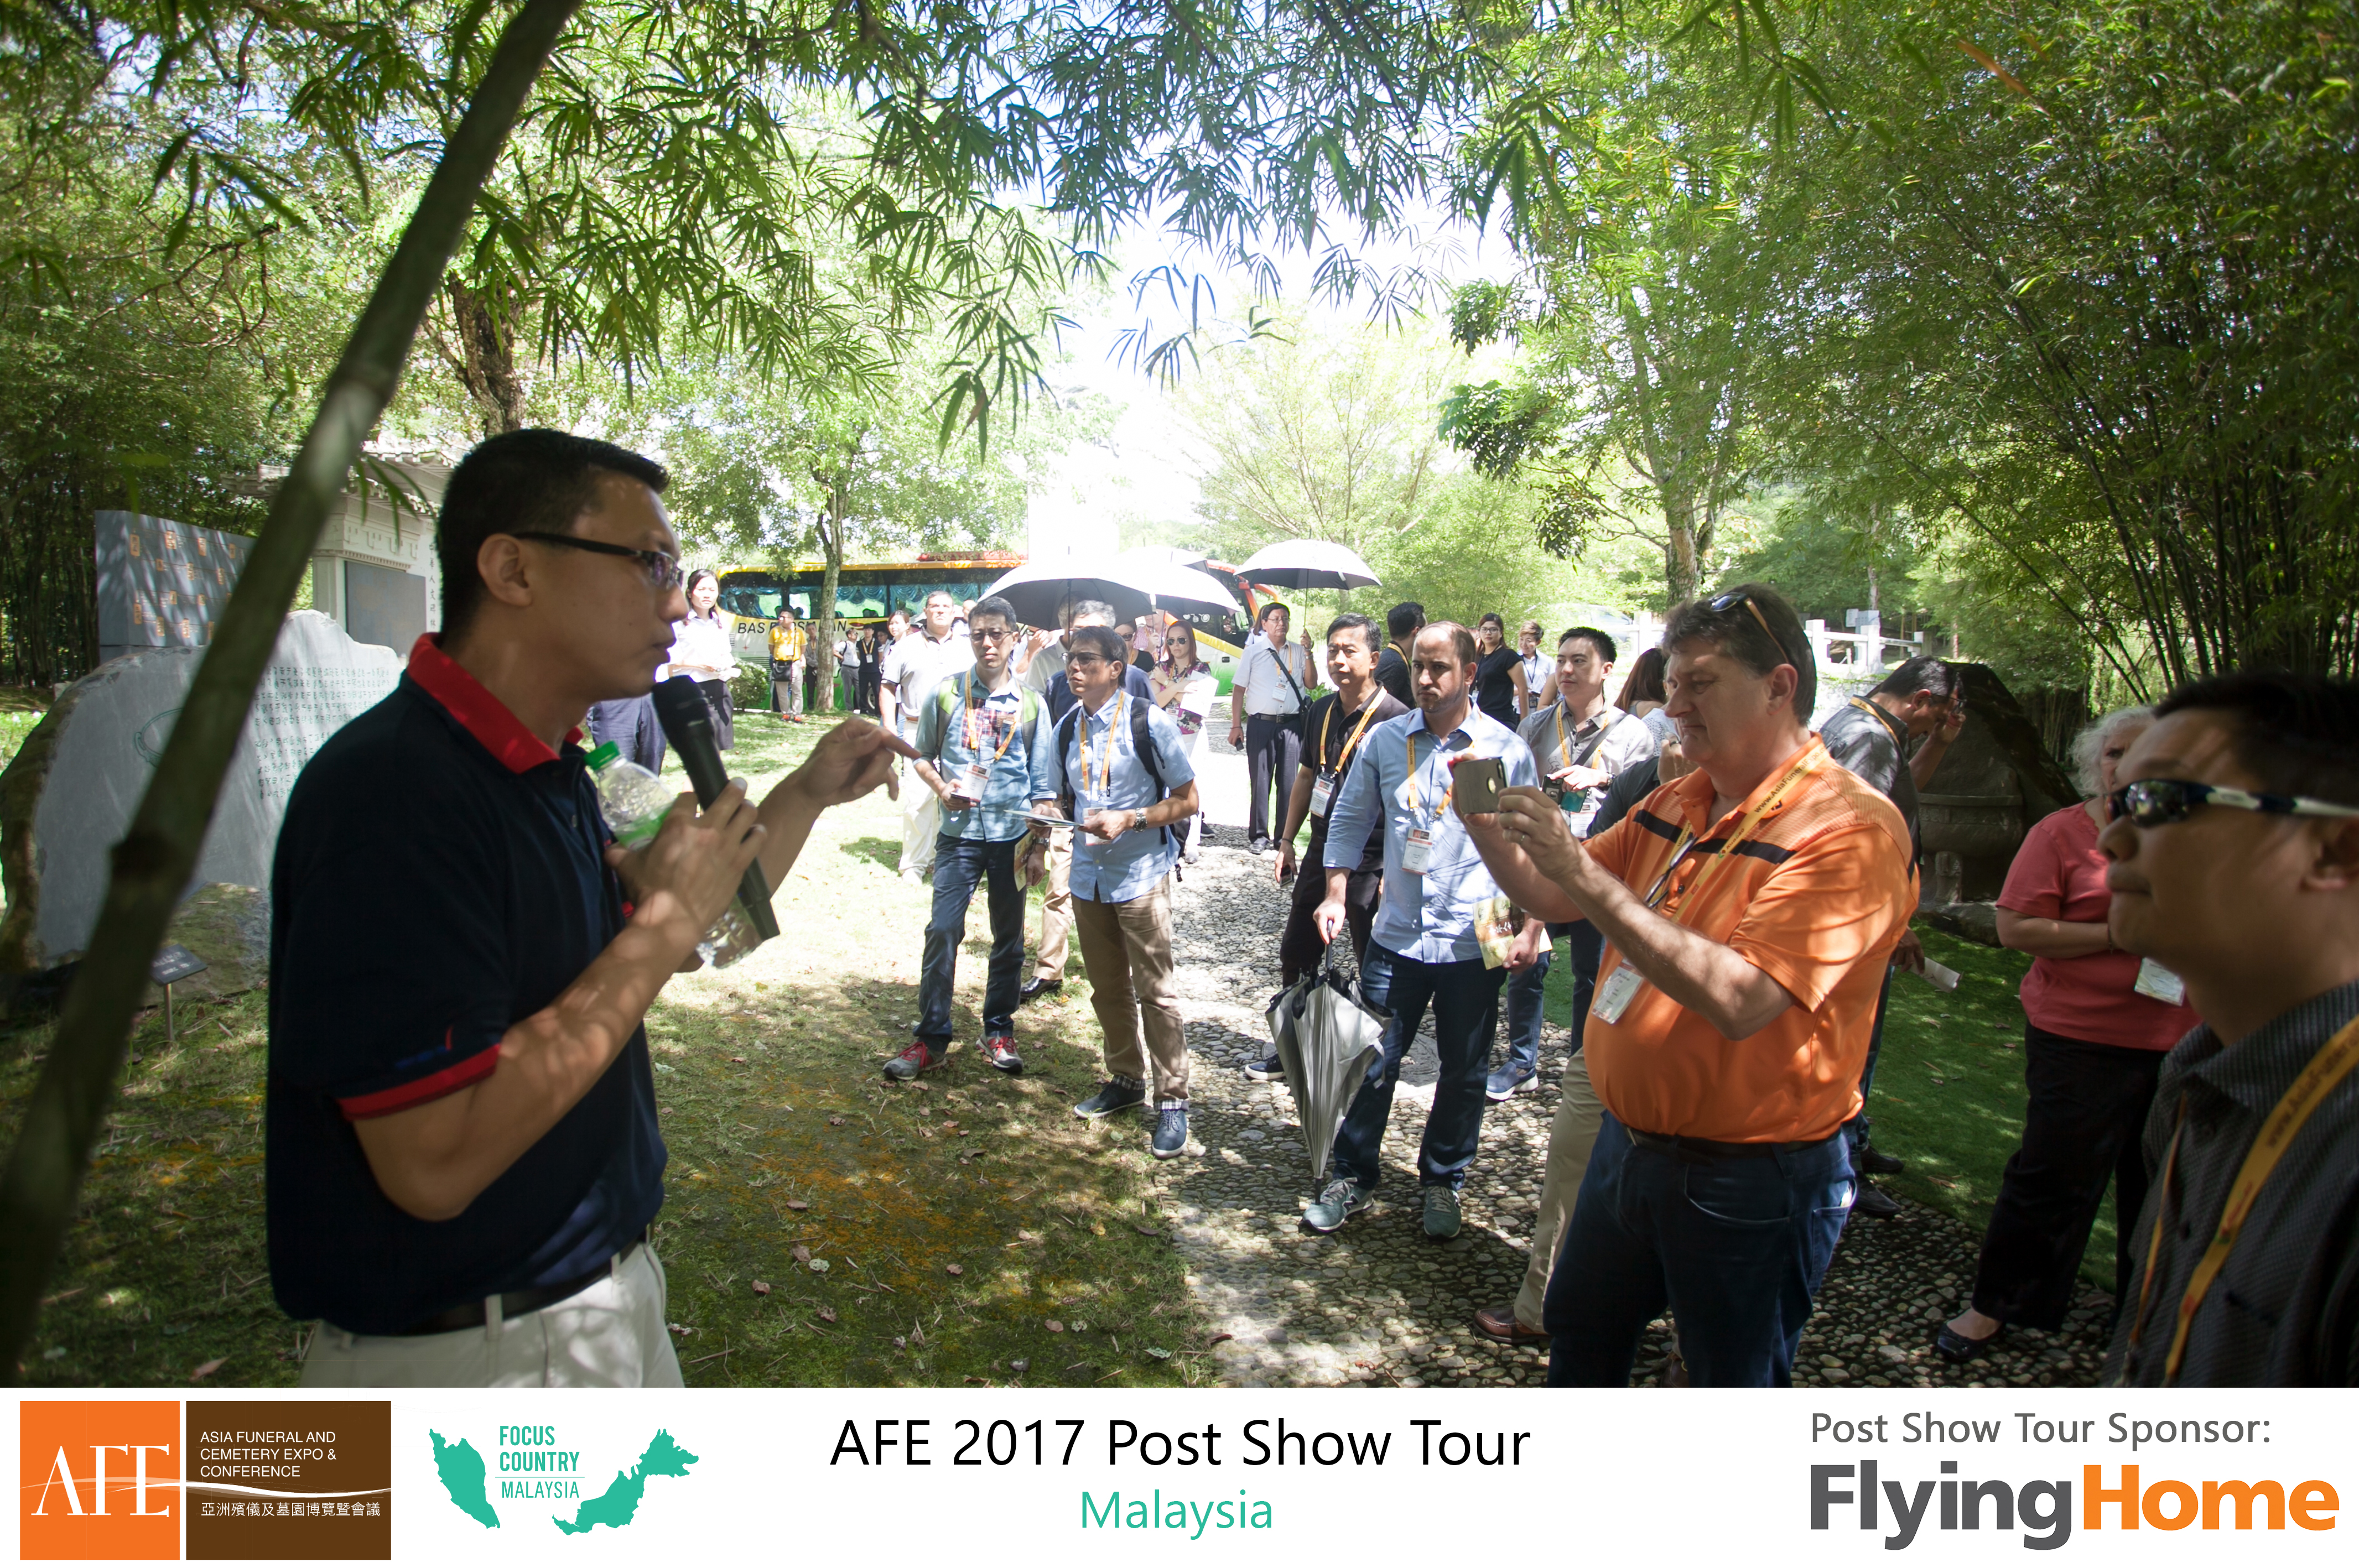 AFE Post Show Tour 2017 Day 2 - 06